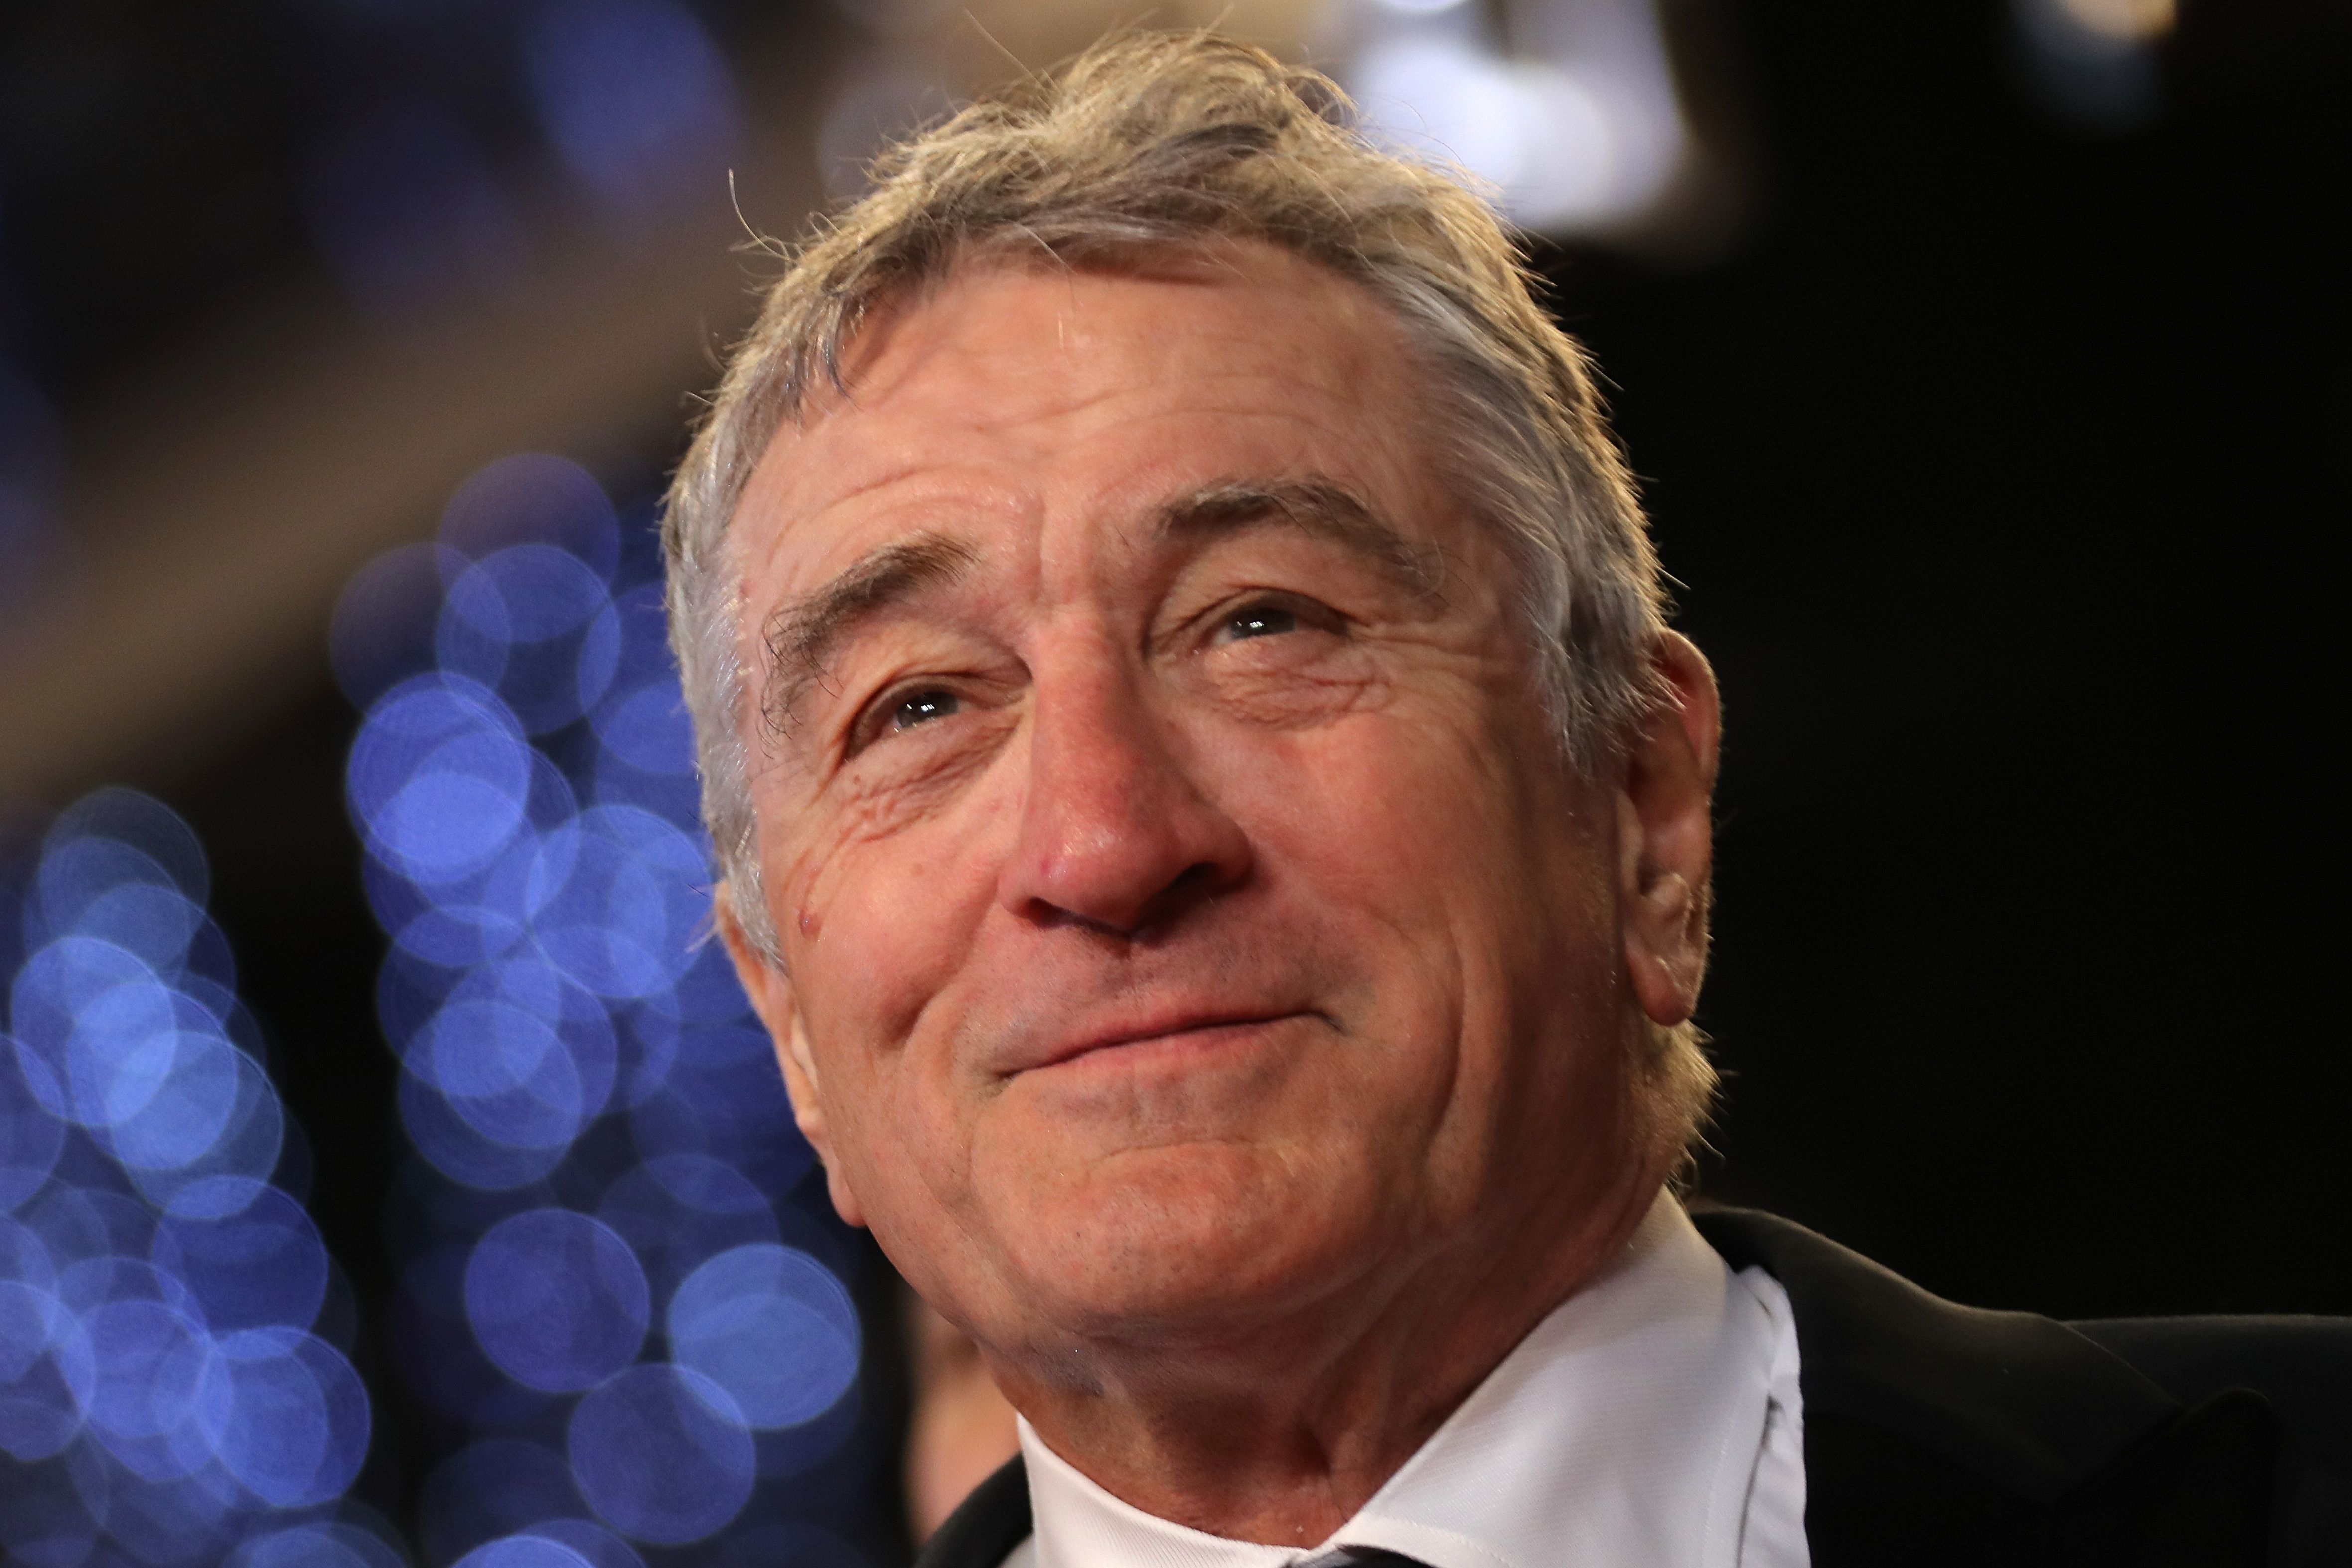 US actor Robert de Niro poses as he arrives on May 16, 2016 for the screening of the film 'Hands of Stone' at the 69th Cannes Film Festival in Cannes, southern France.  / AFP / Valery HACHE        (Photo credit should read VALERY HACHE/AFP/Getty Images)